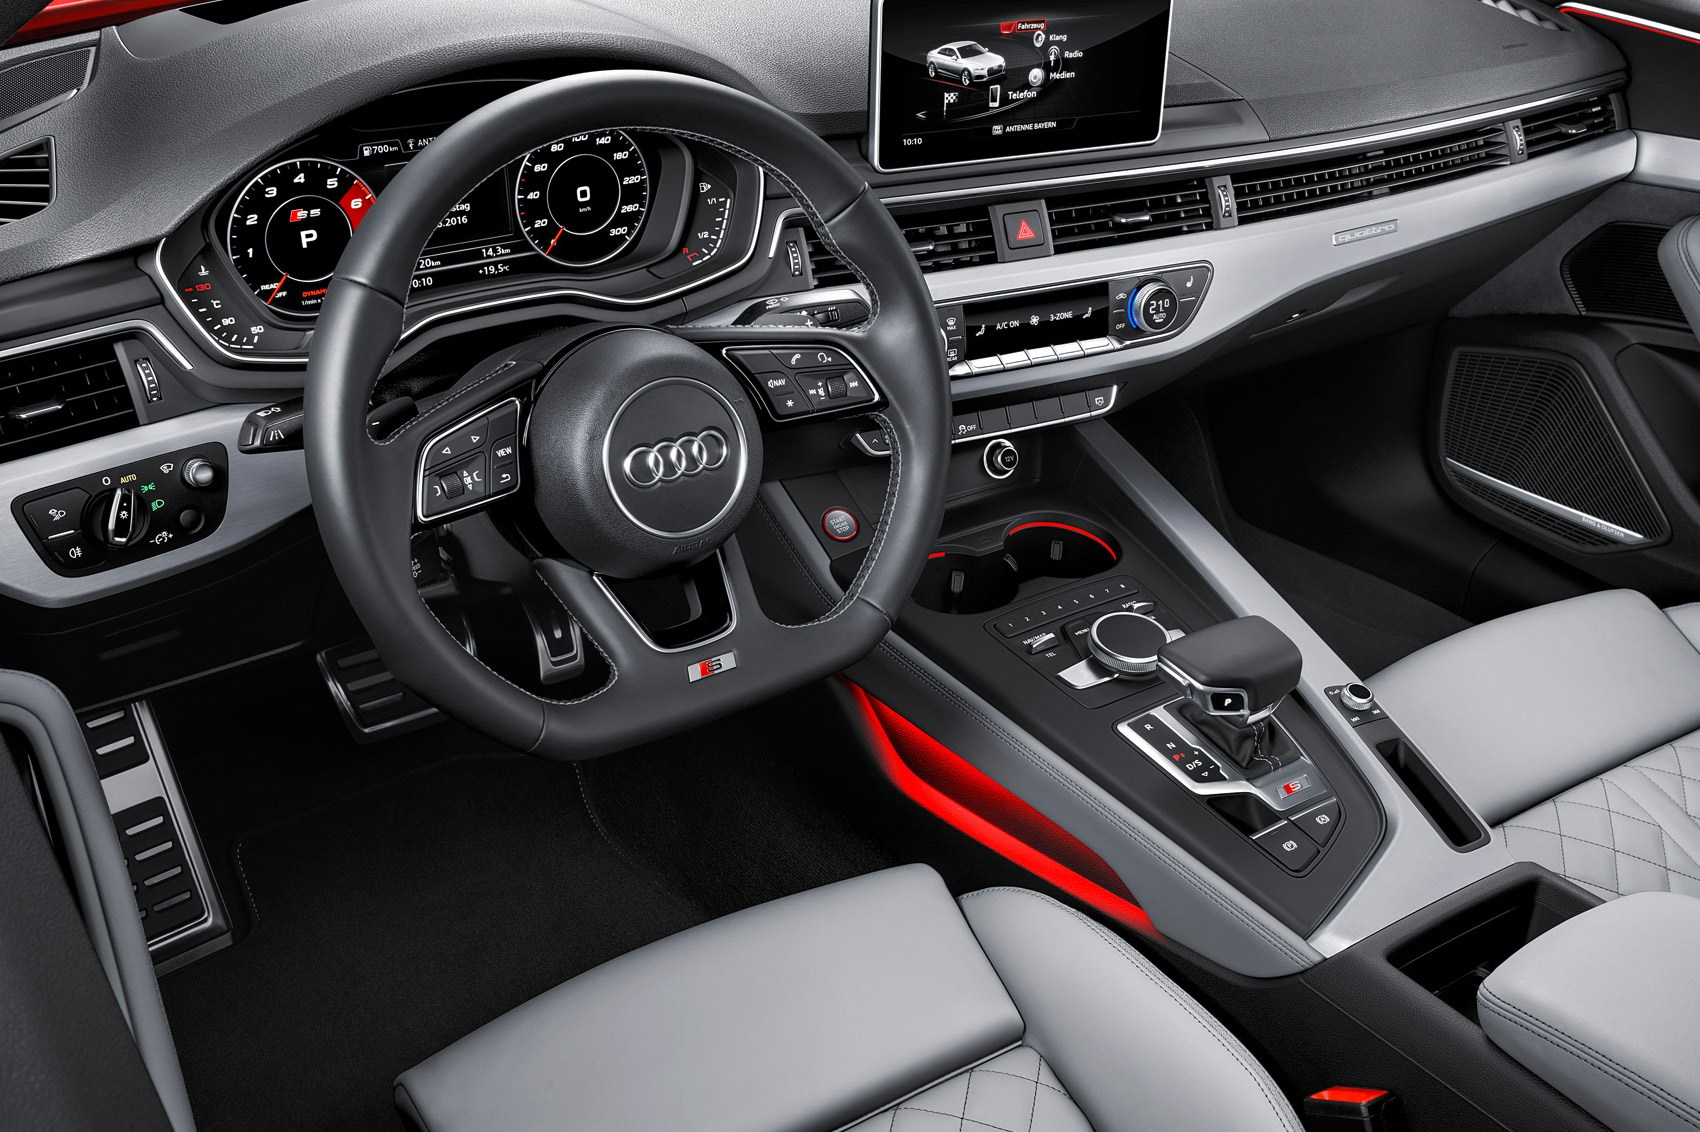 More Info On Audi A5